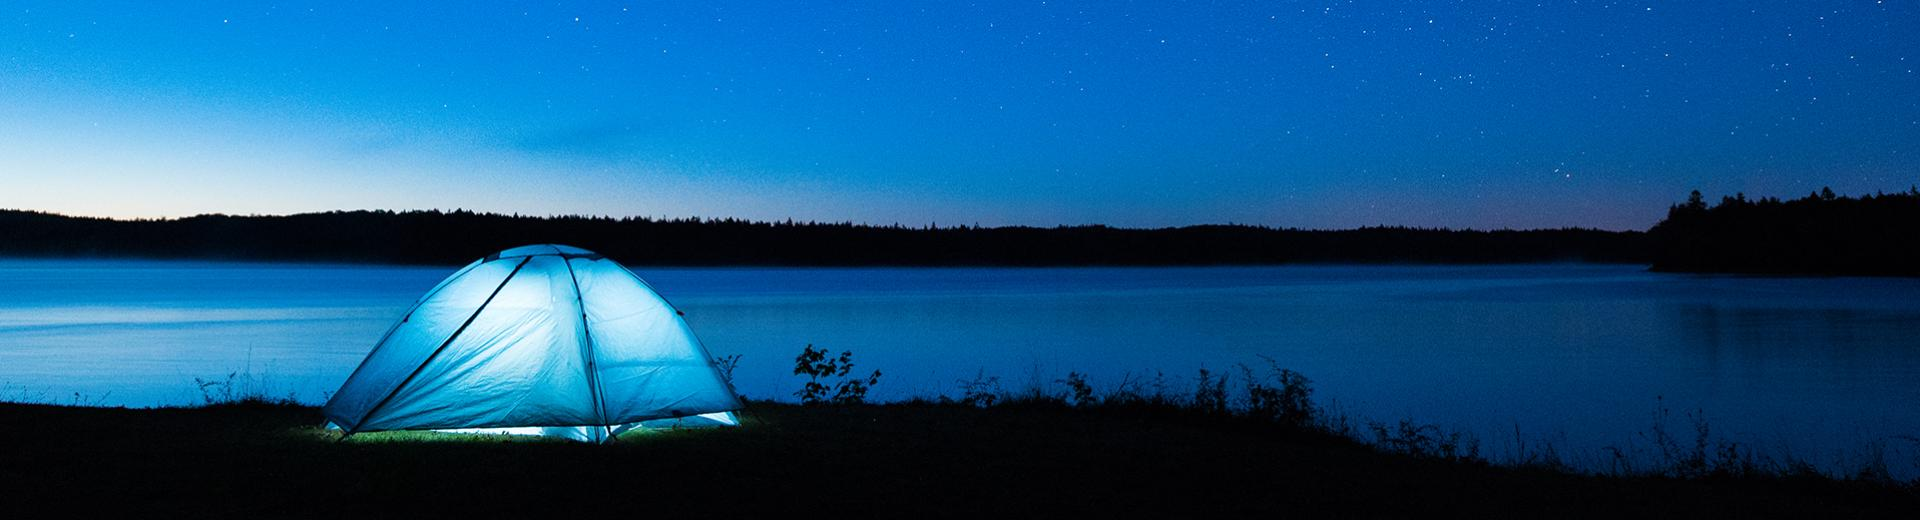 Ellenwood Lake Campground, Nova Scotia